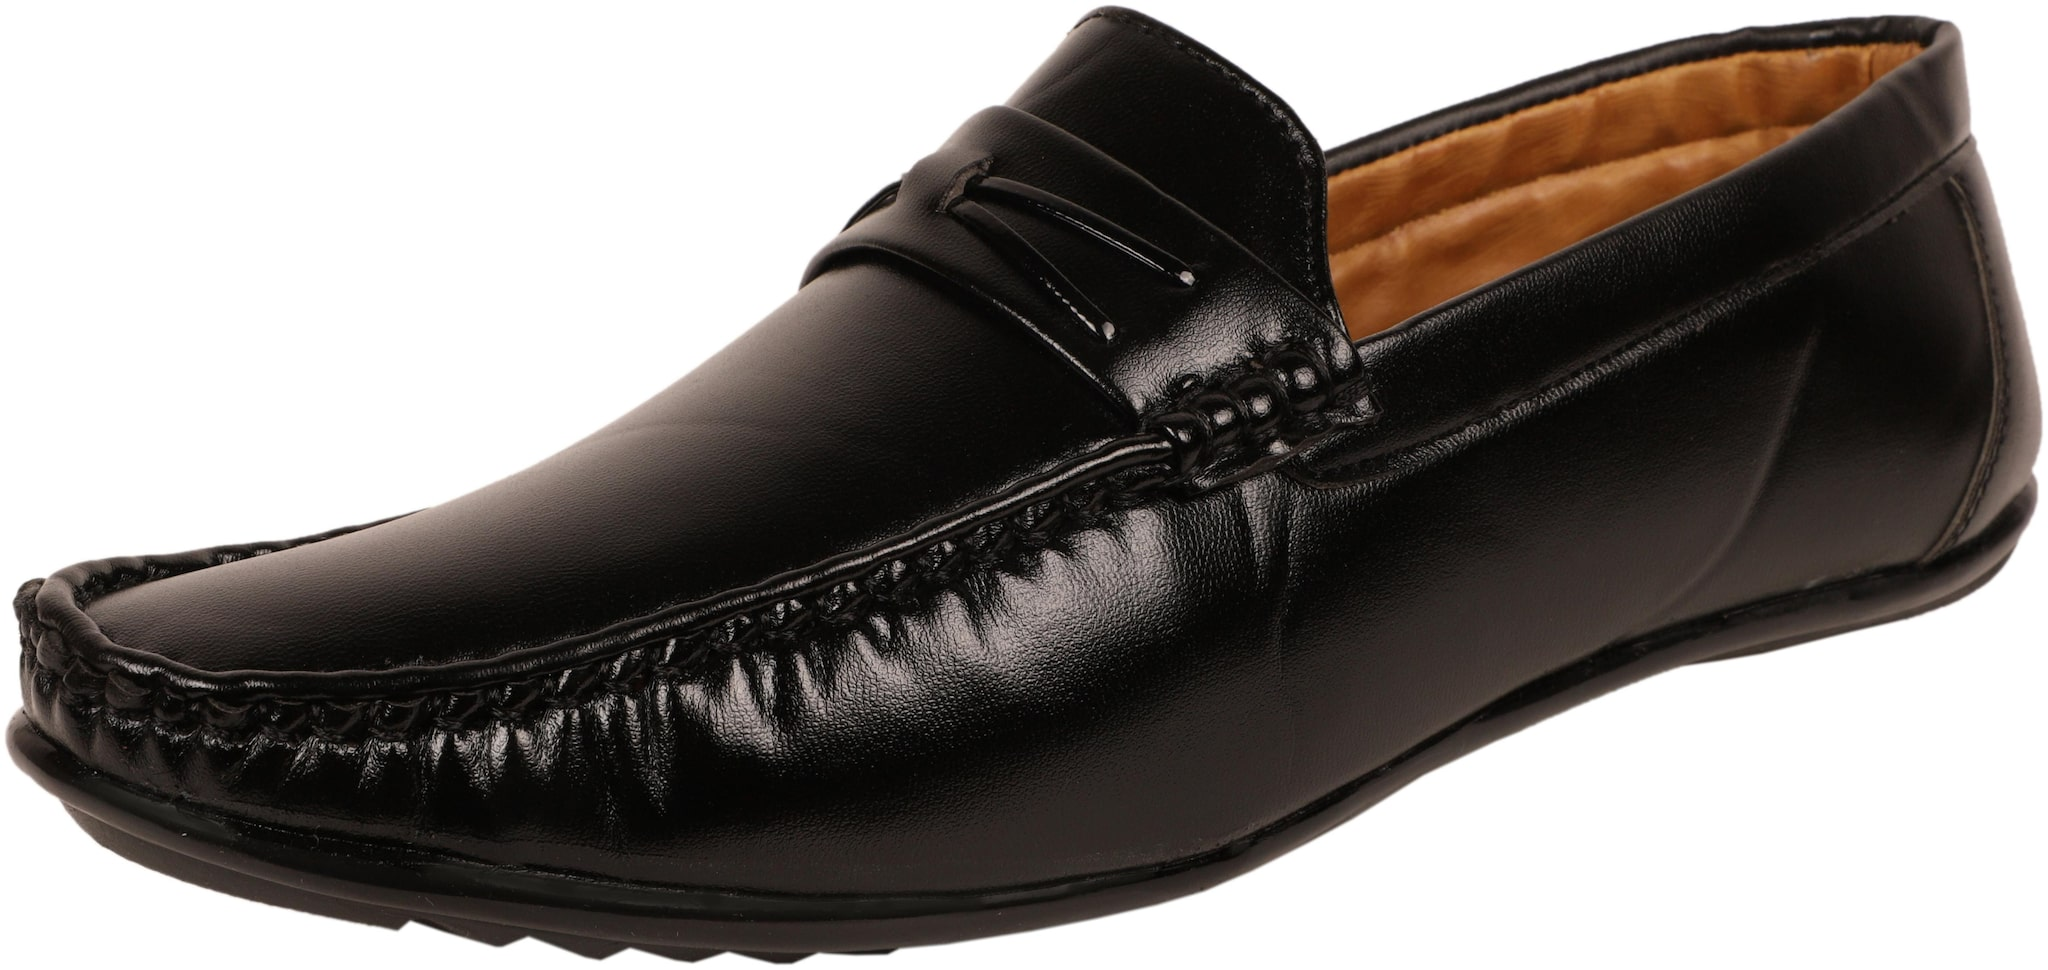 https://assetscdn1.paytm.com/images/catalog/product/F/FO/FOOSHOES-KINGDOSHOE890689E6A25BD7/1614054619186_0..jpg